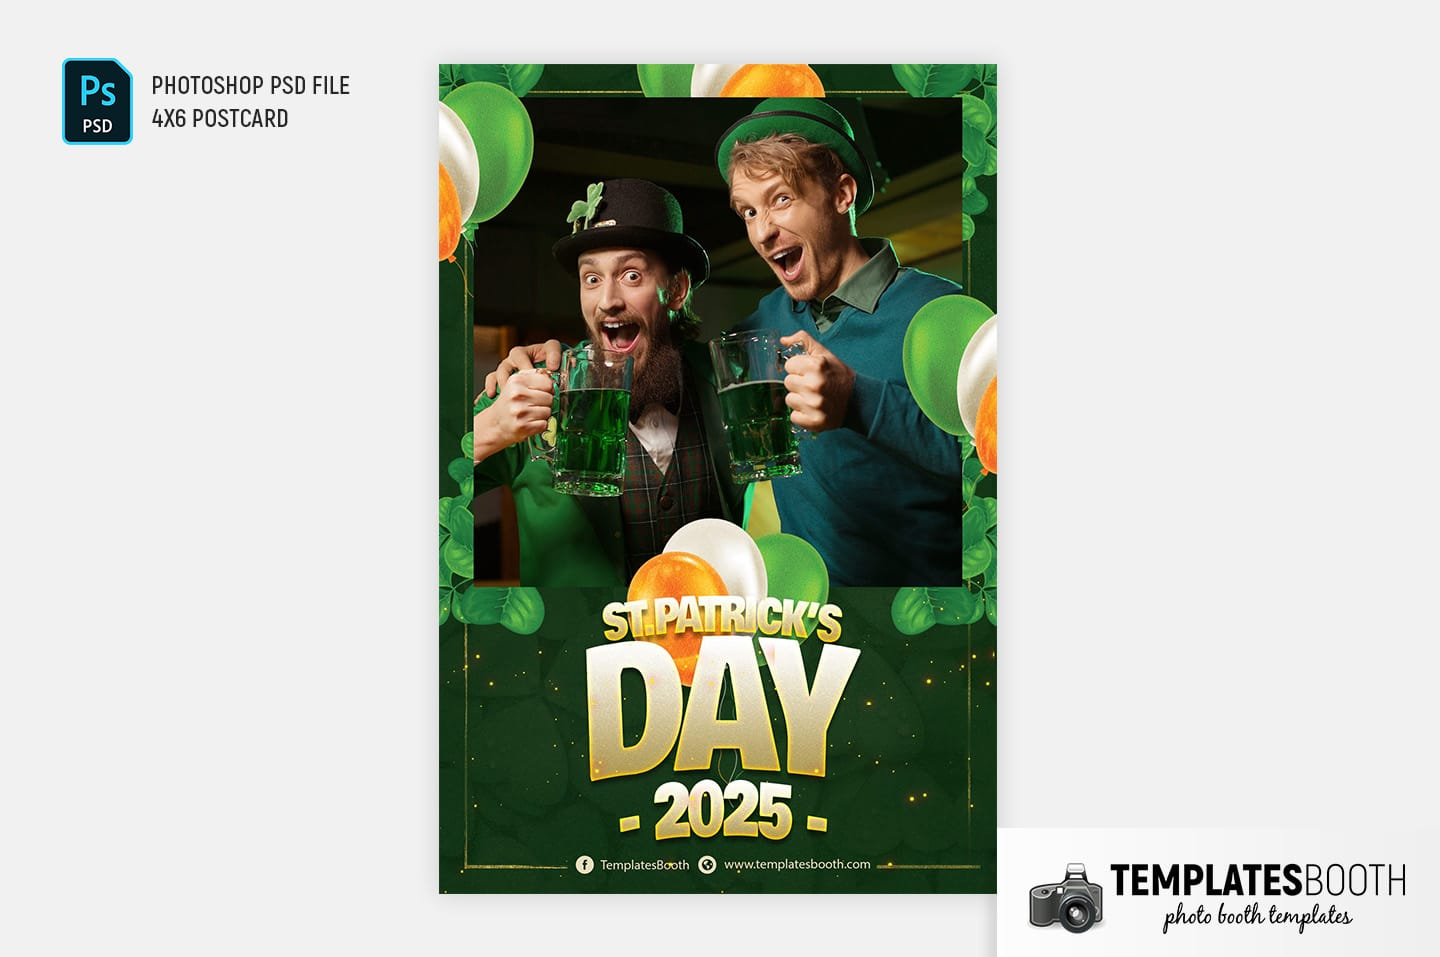 St. Patrick's Day Photo Booth Template (4x6 postcard)